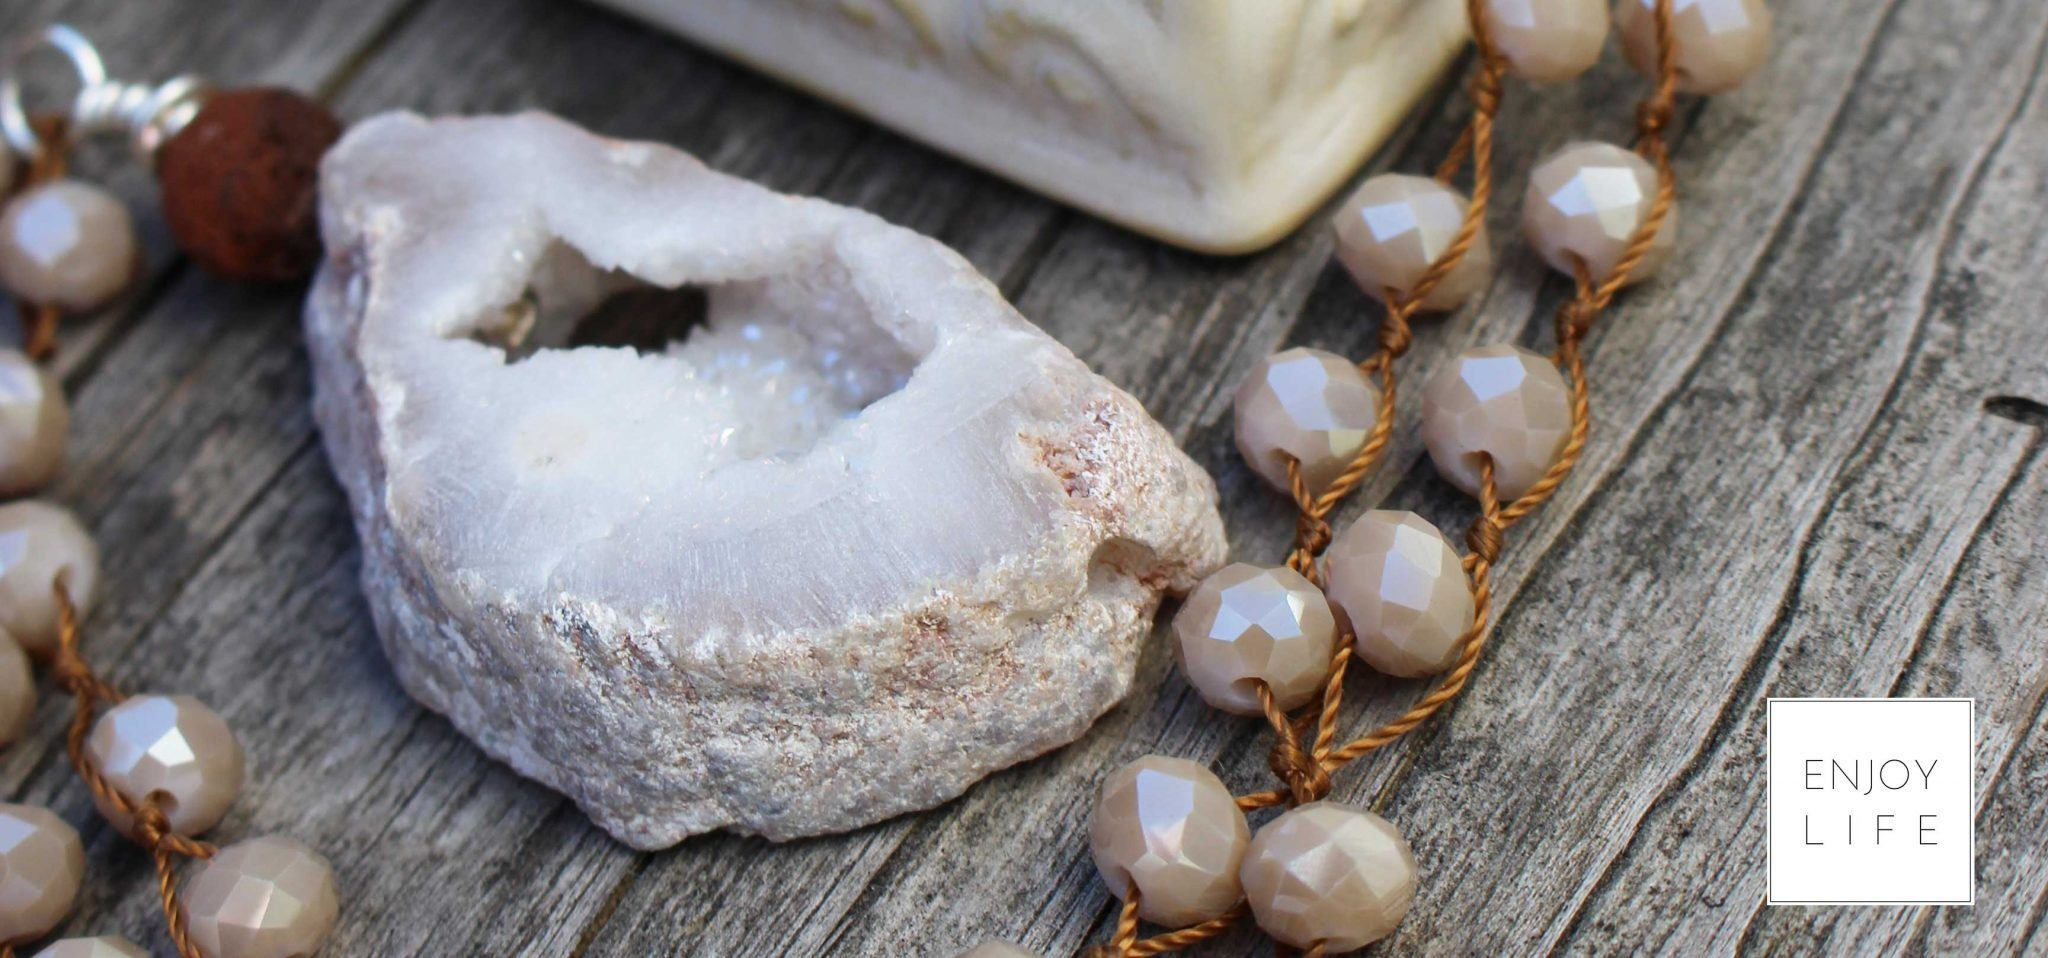 Luxury Diffuser Jewelry collection ENJOY LIFE by Skimbaco Lifestyle